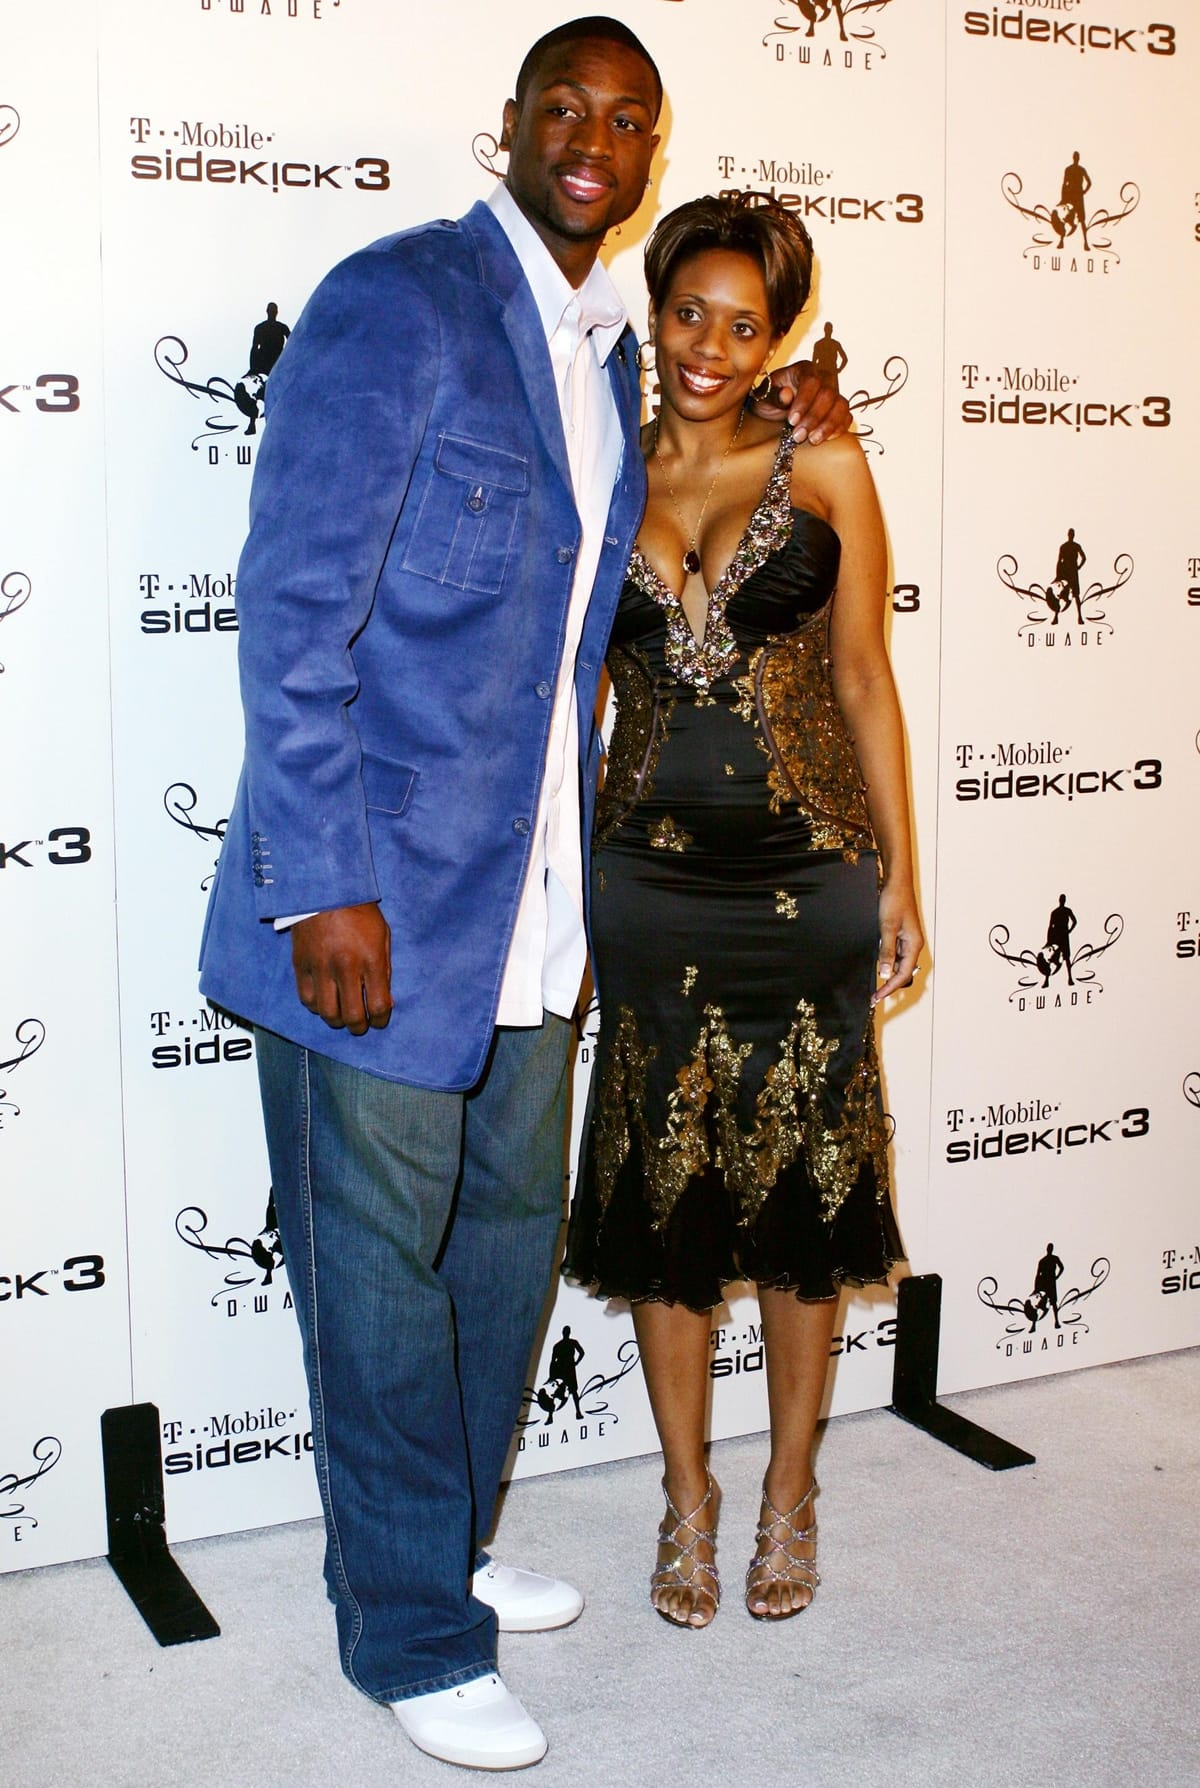 Dwayne Wade has two children with his high school sweetheart Siohvaughn Funches, with whom he was married from 2002-2007